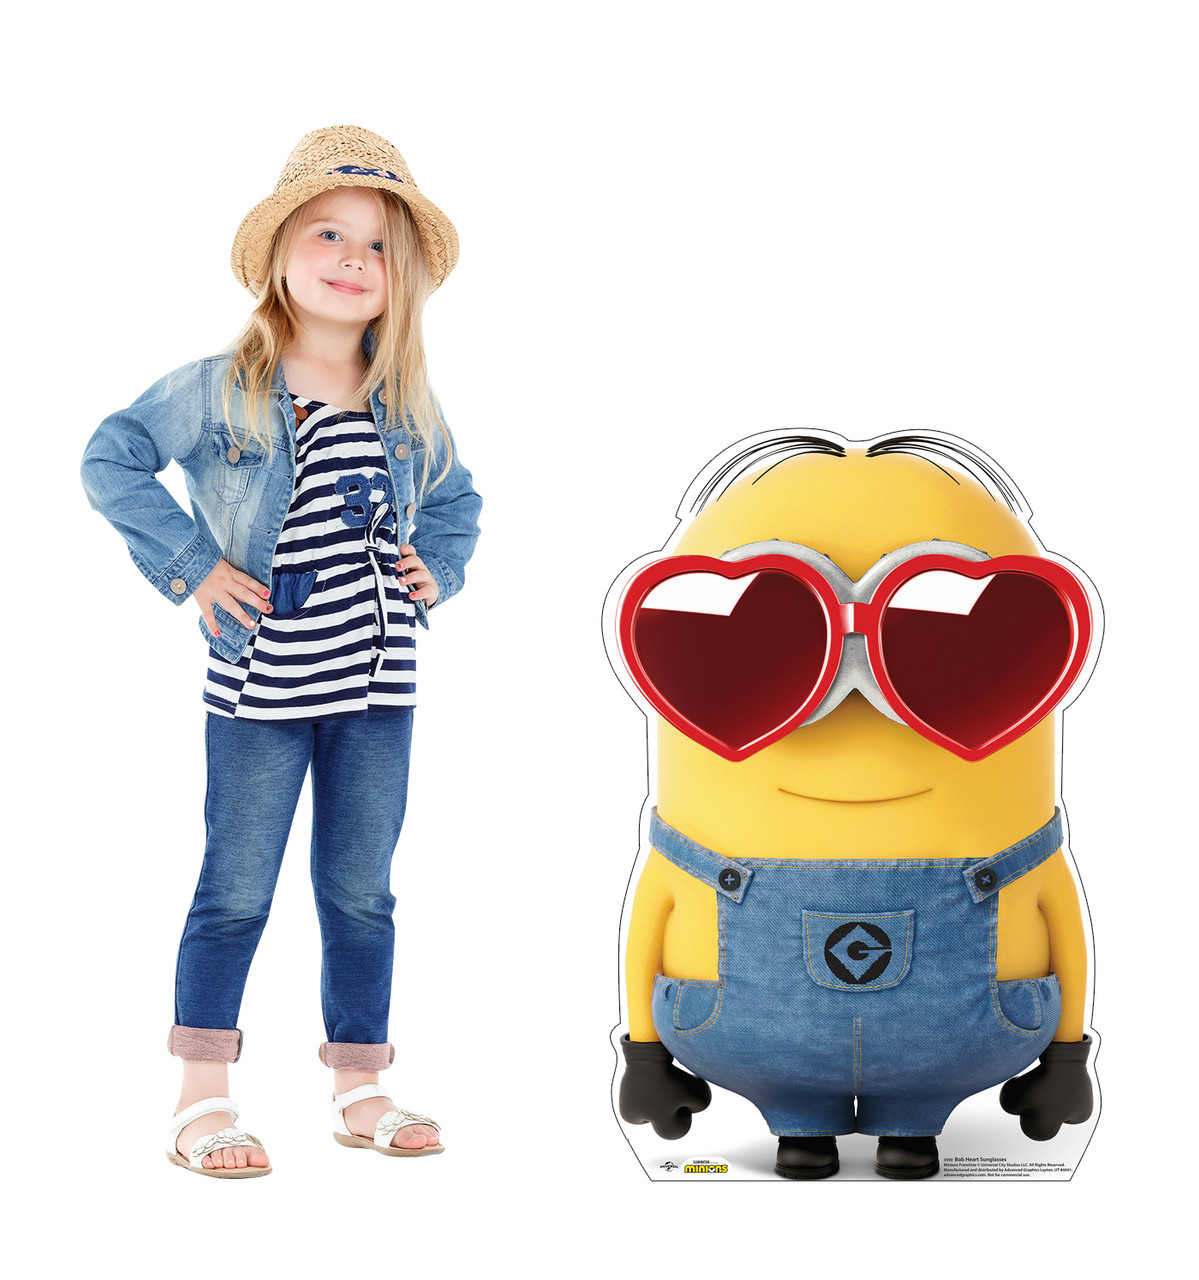 Life-size cardboard standee of Bob Heart Sunglasses with model.